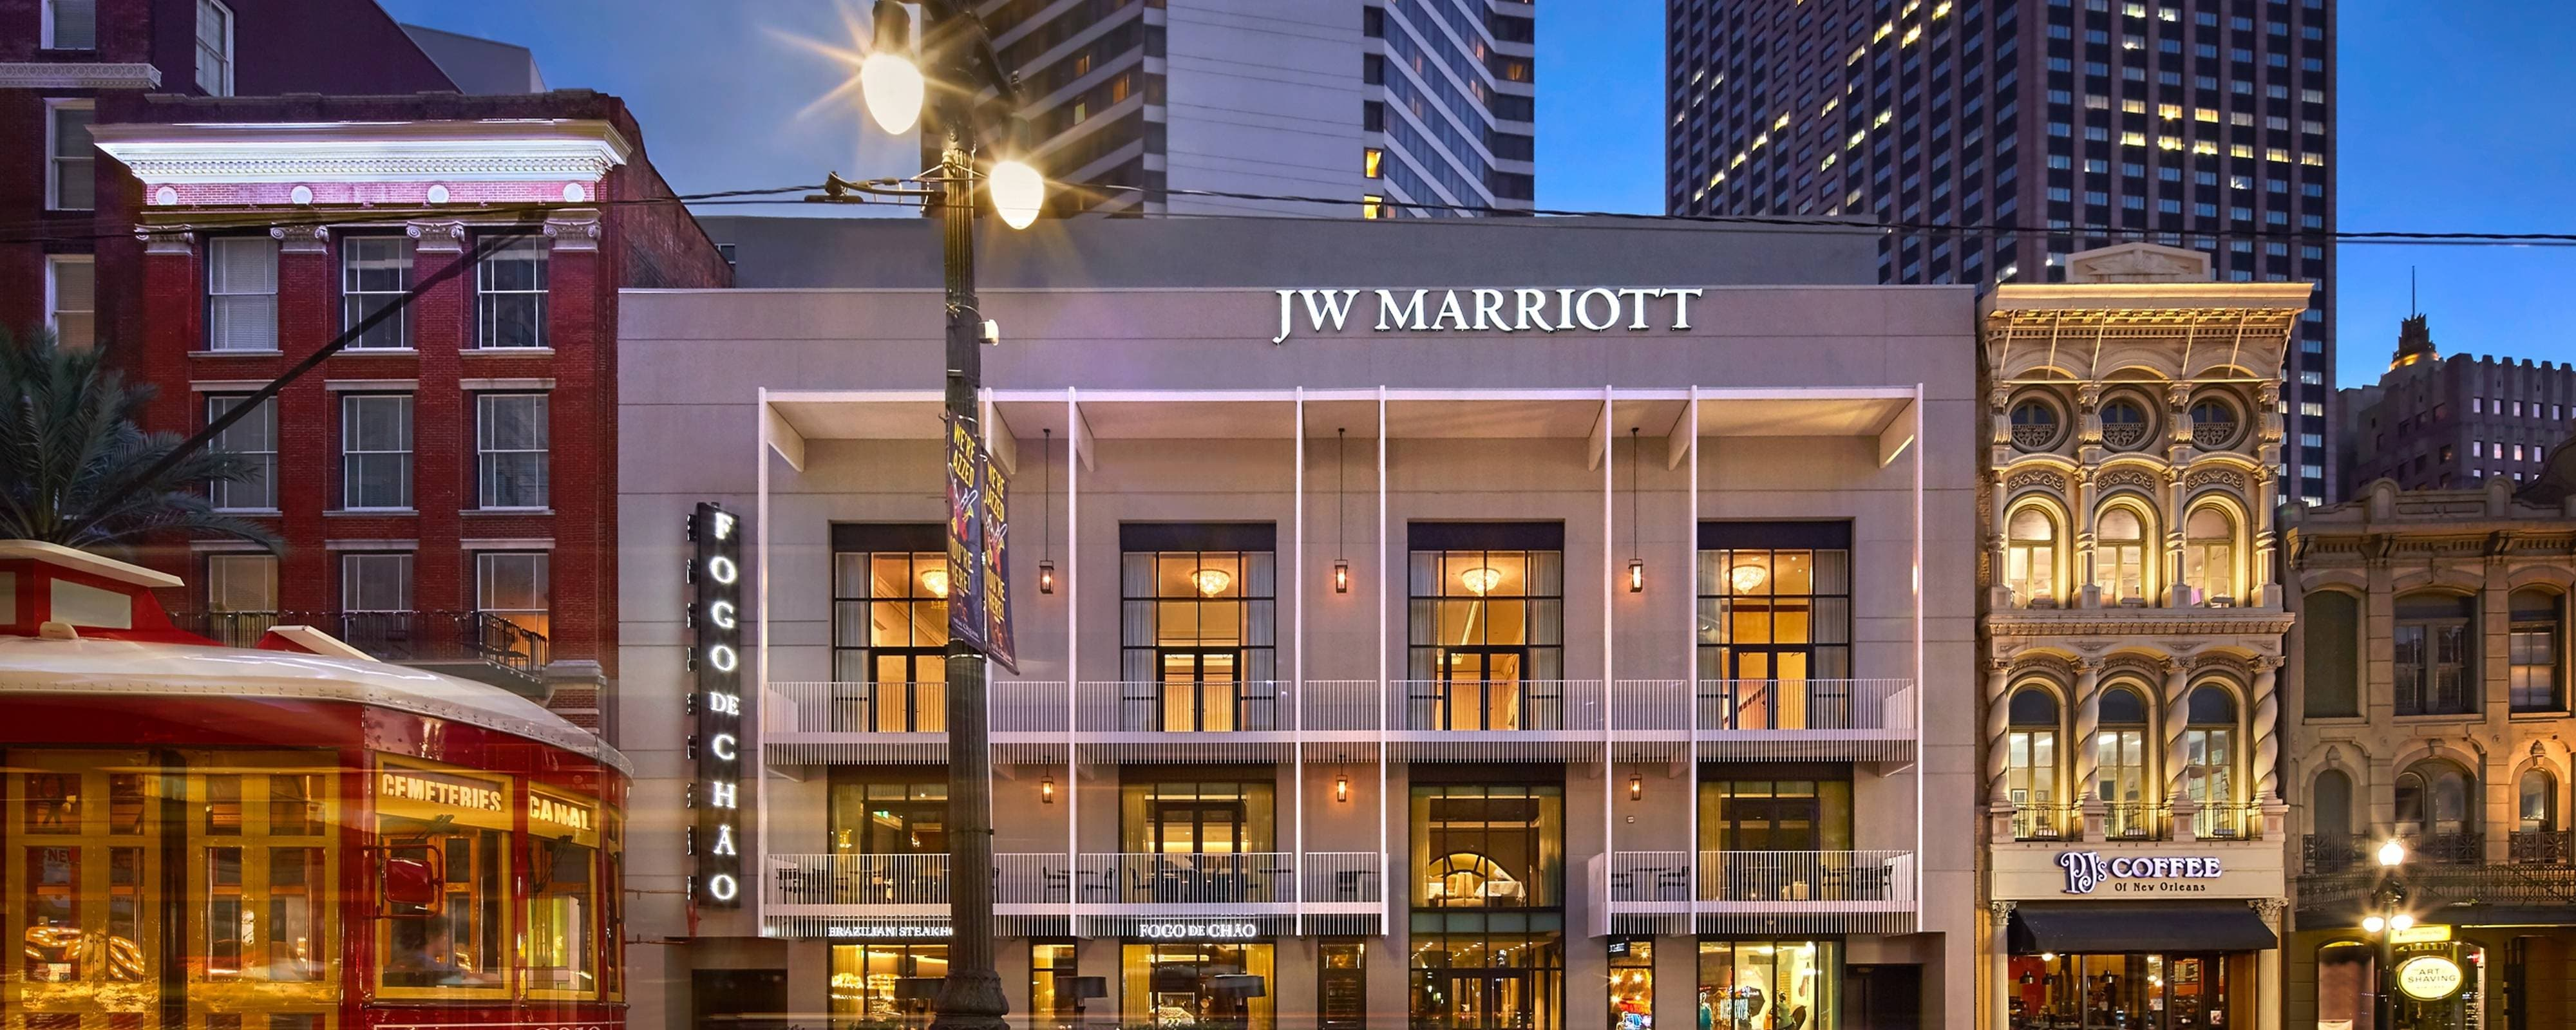 luxury hotel in new orleans la jw marriott new orleans. Black Bedroom Furniture Sets. Home Design Ideas